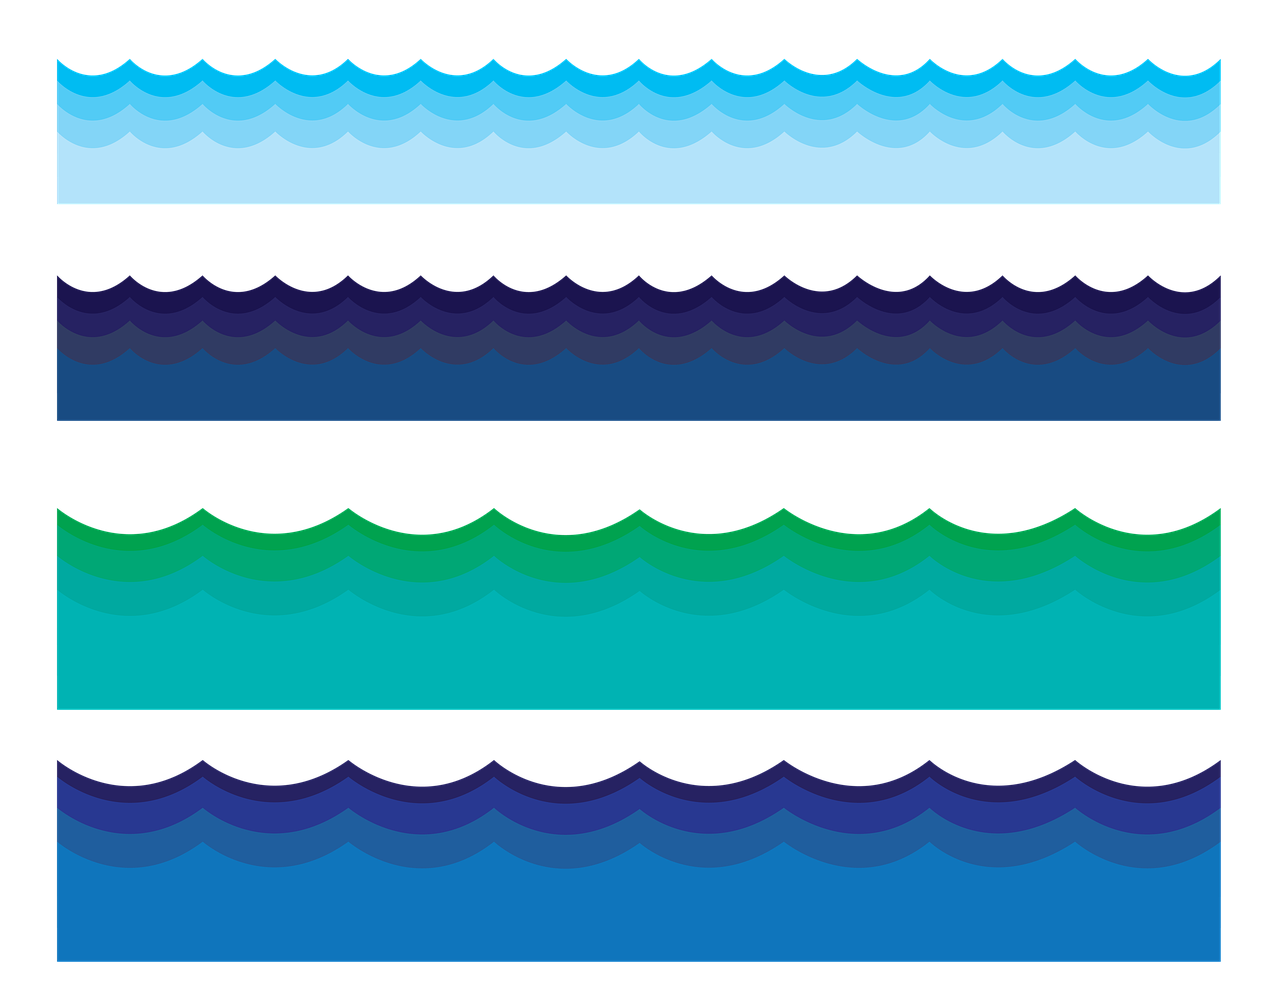 Water clipart boarder. Border waves ocean png